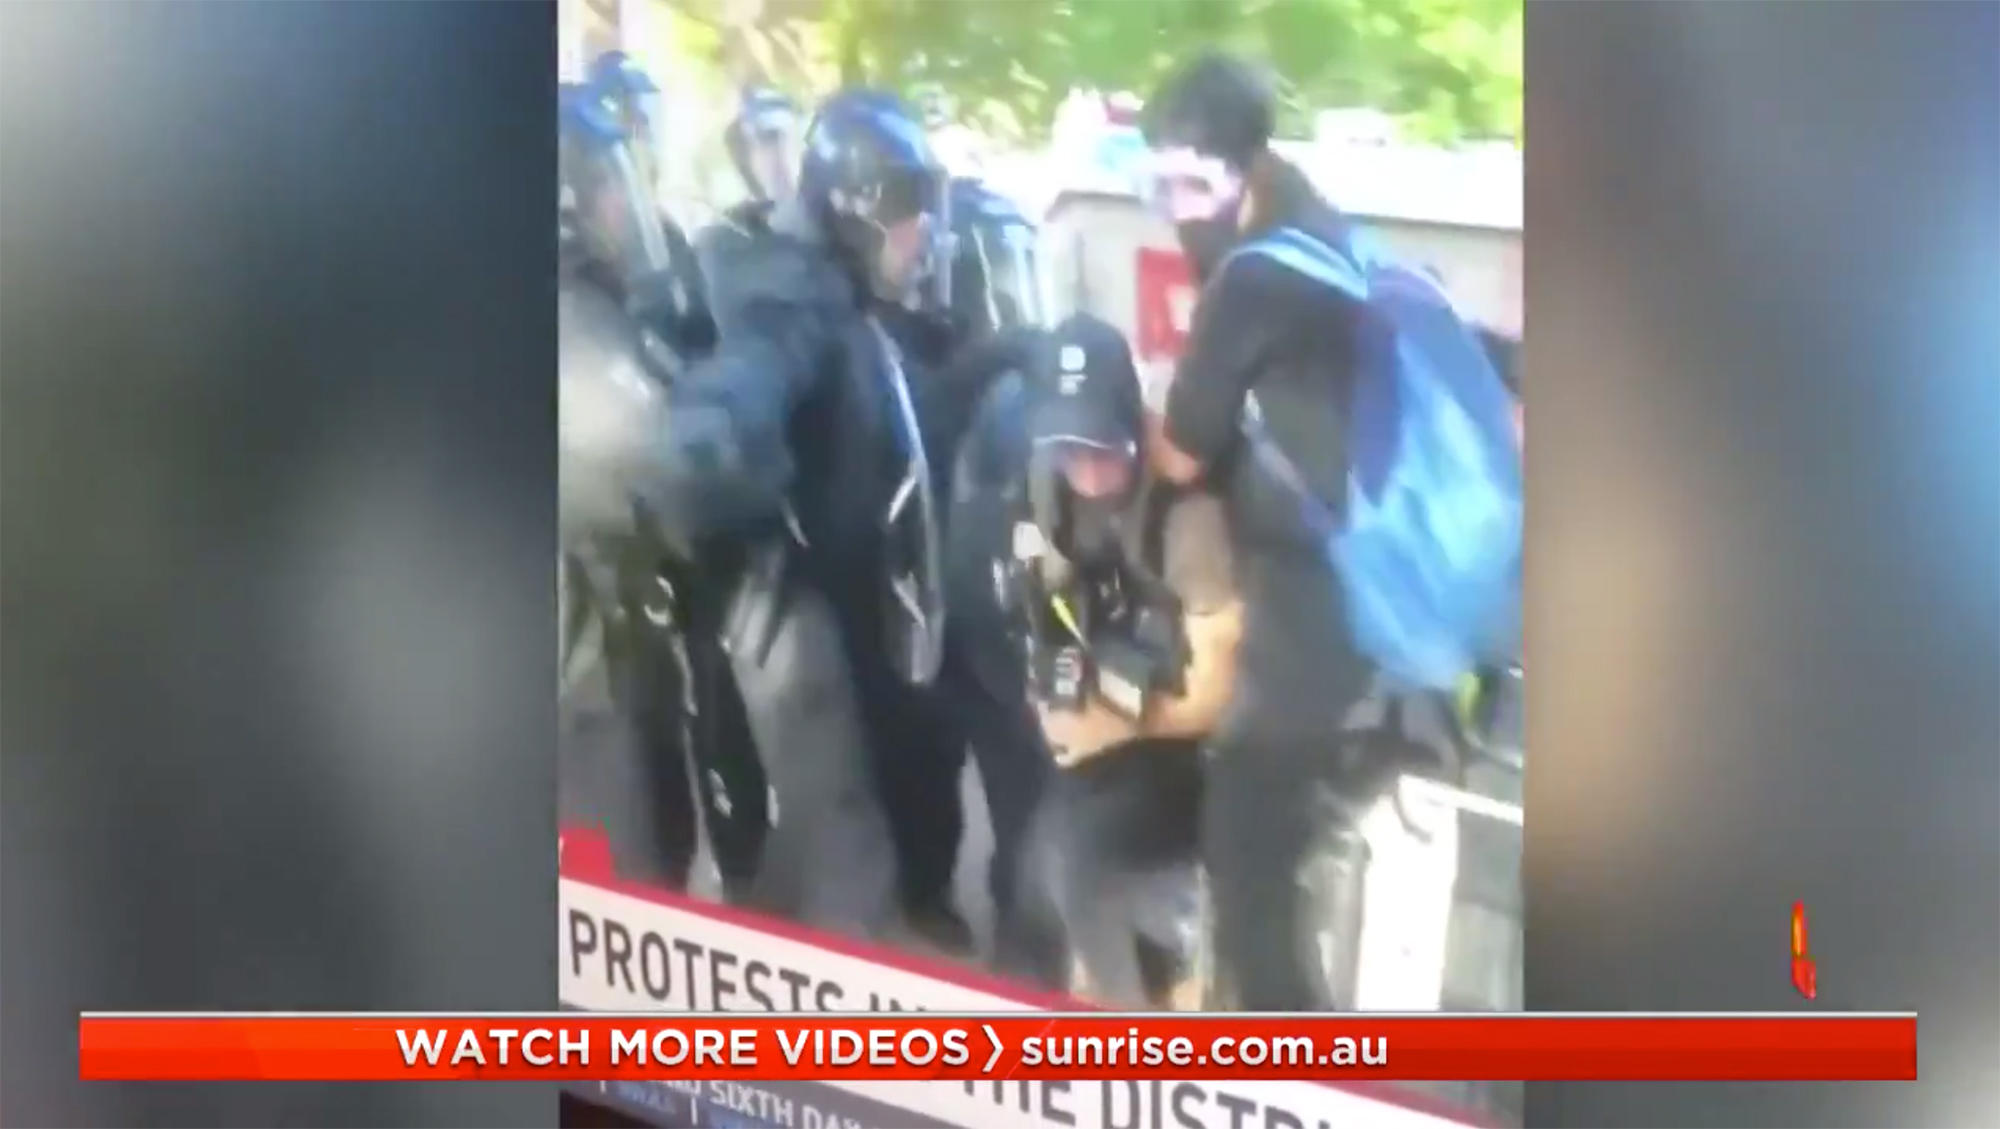 Australia will investigate attack on journalists by police in Washington